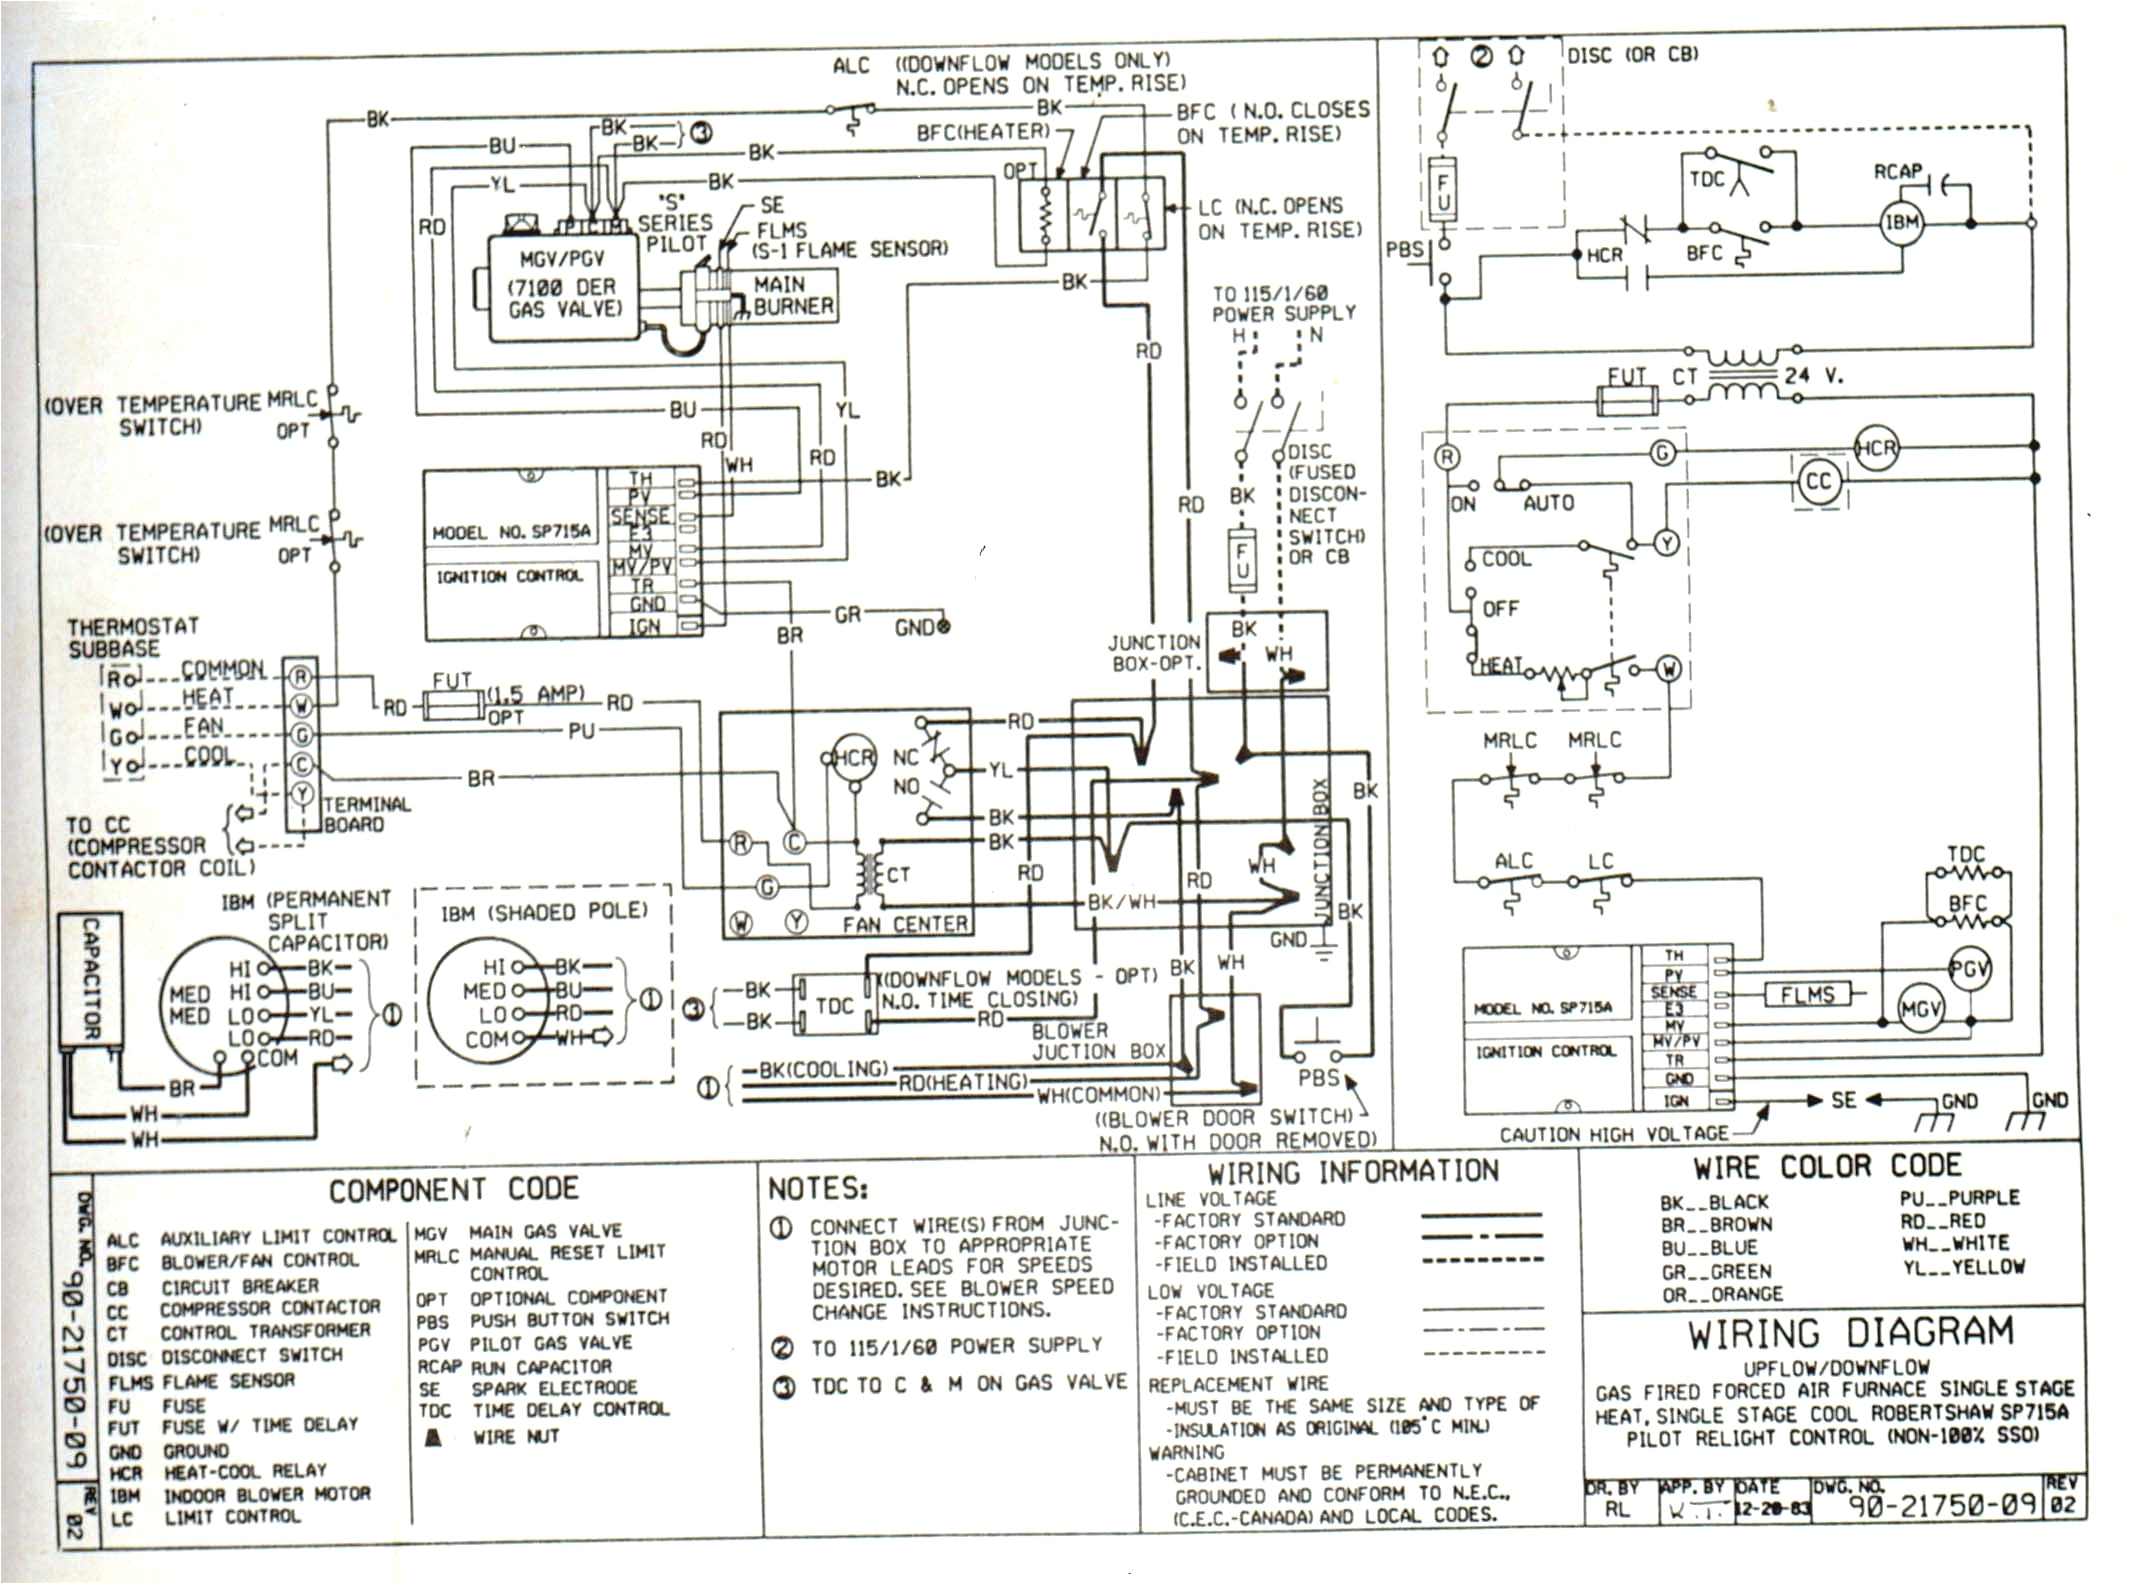 dx cooling and heating hot water on wiring rheem water heater rheem hybrid water heater wiring diagram rheem water heater wiring diagram